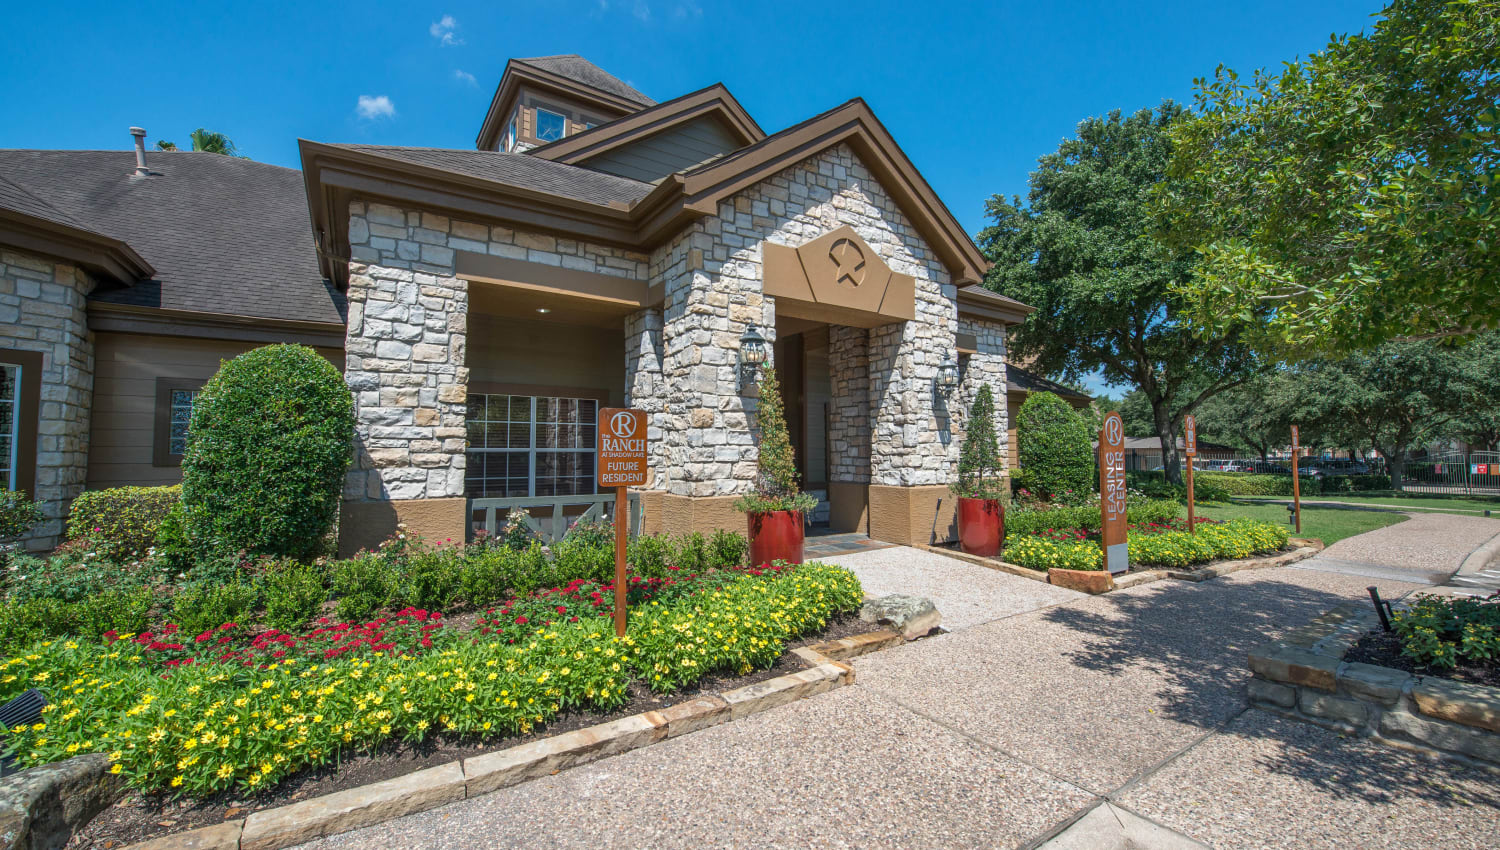 Professionally maintained landscaping outside the leasing center at The Ranch at Shadow Lake in Houston, Texas